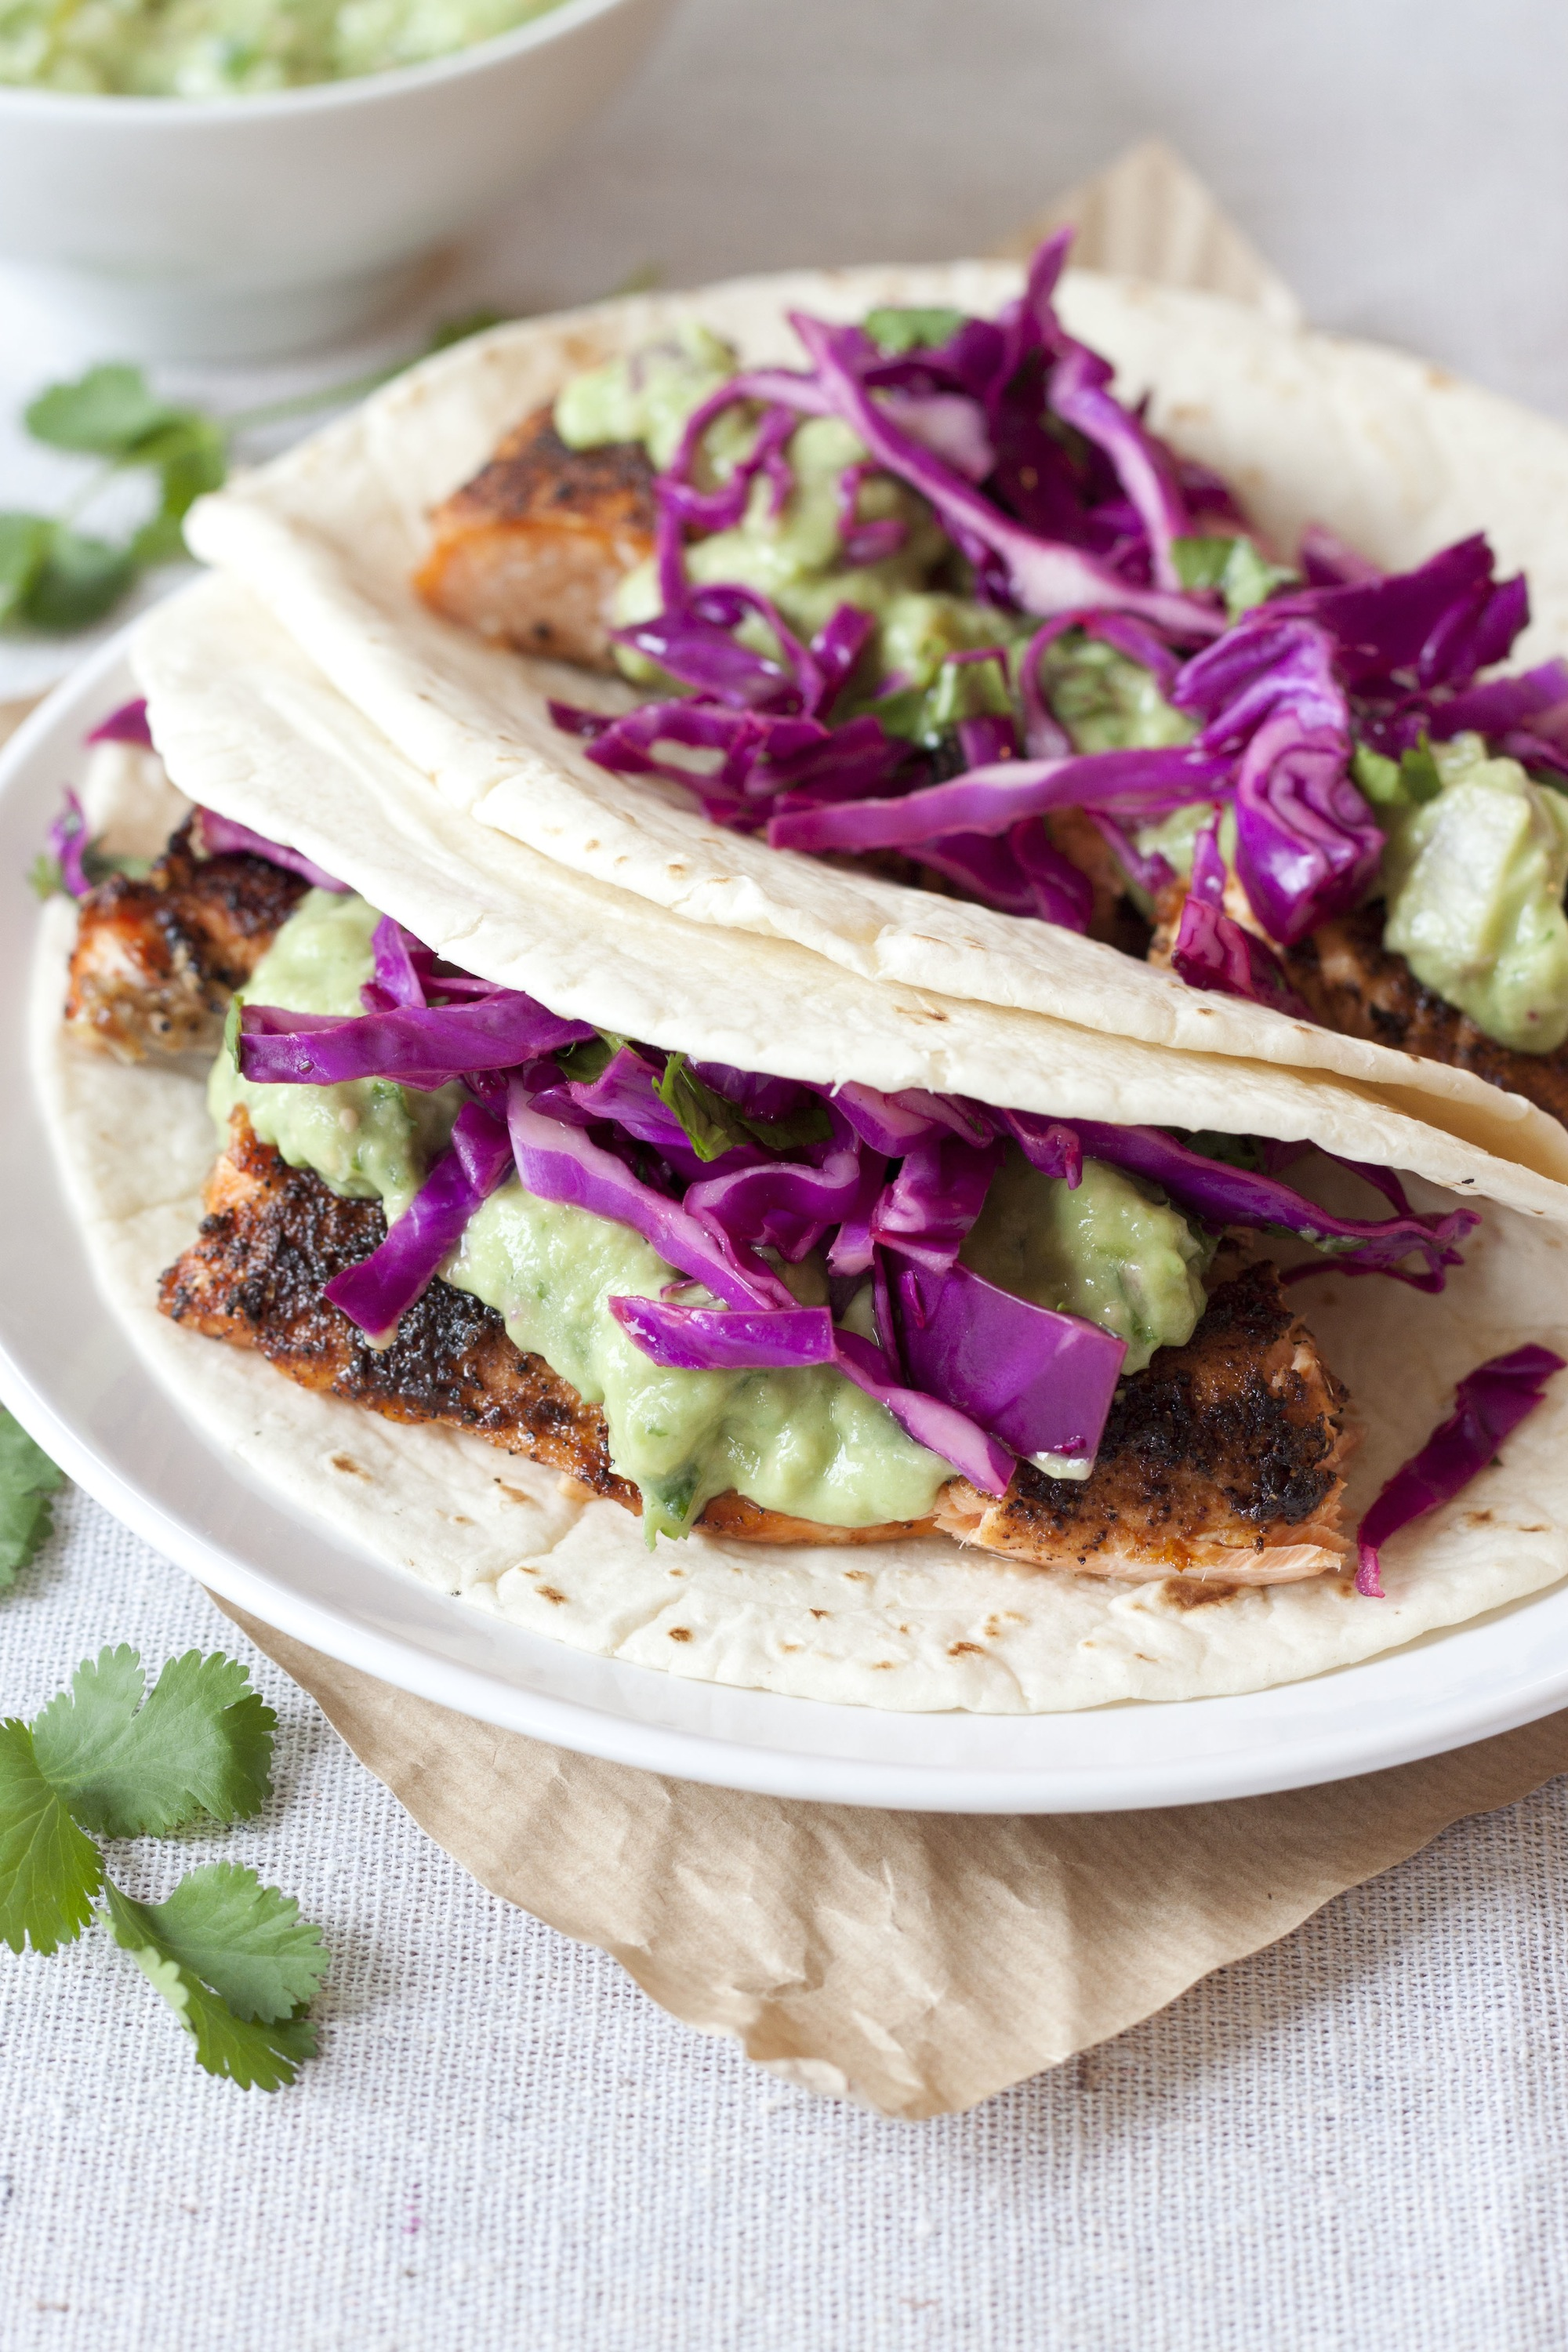 Coffee and spice rubbed salmon tacos